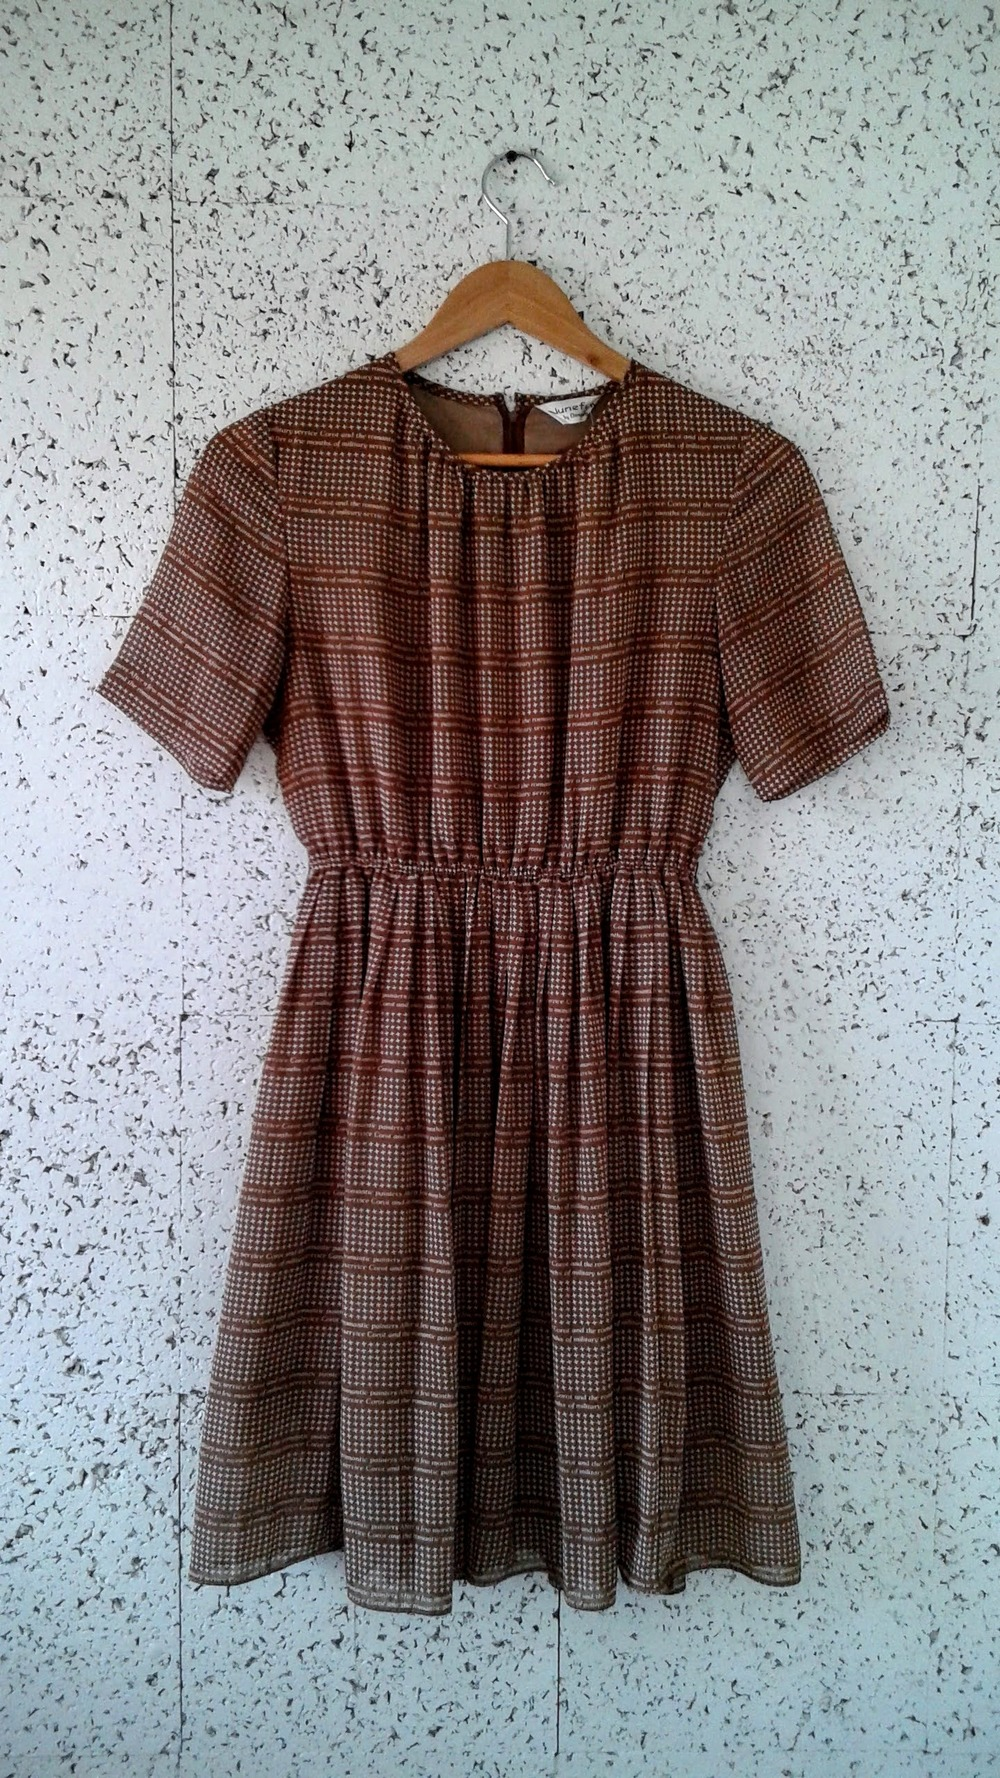 June Fum Onwards dress; Size M, $30